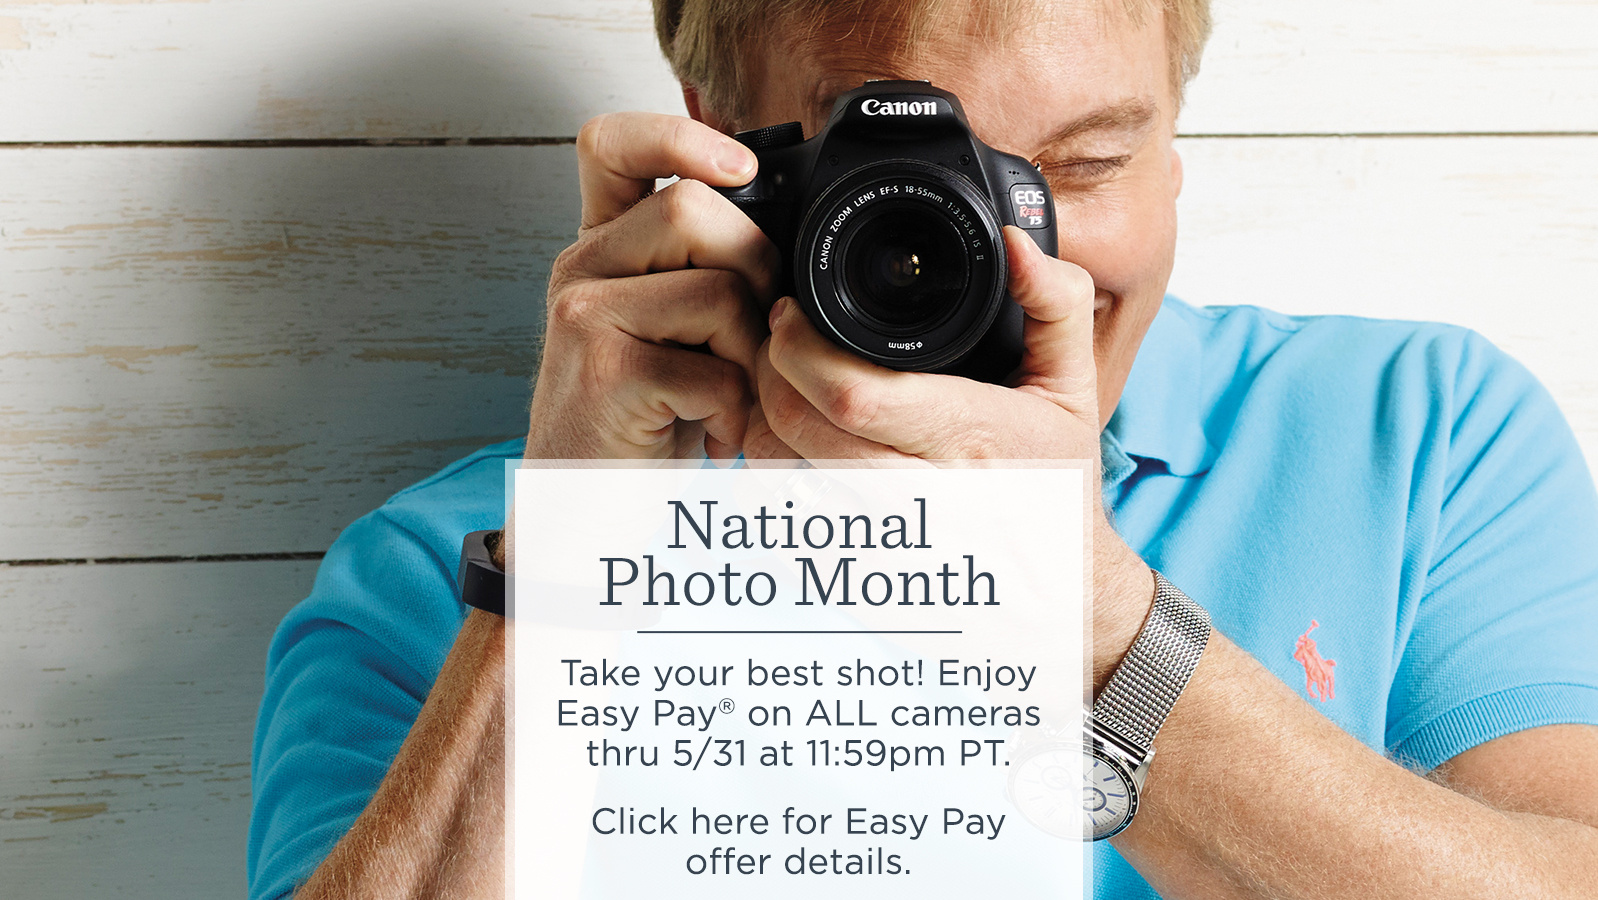 National Photo Month. Take your best shot! Enjoy Easy Pay® on ALL cameras thru 5/31 at 11:59pm PT.  Click here for Easy Pay offer details.